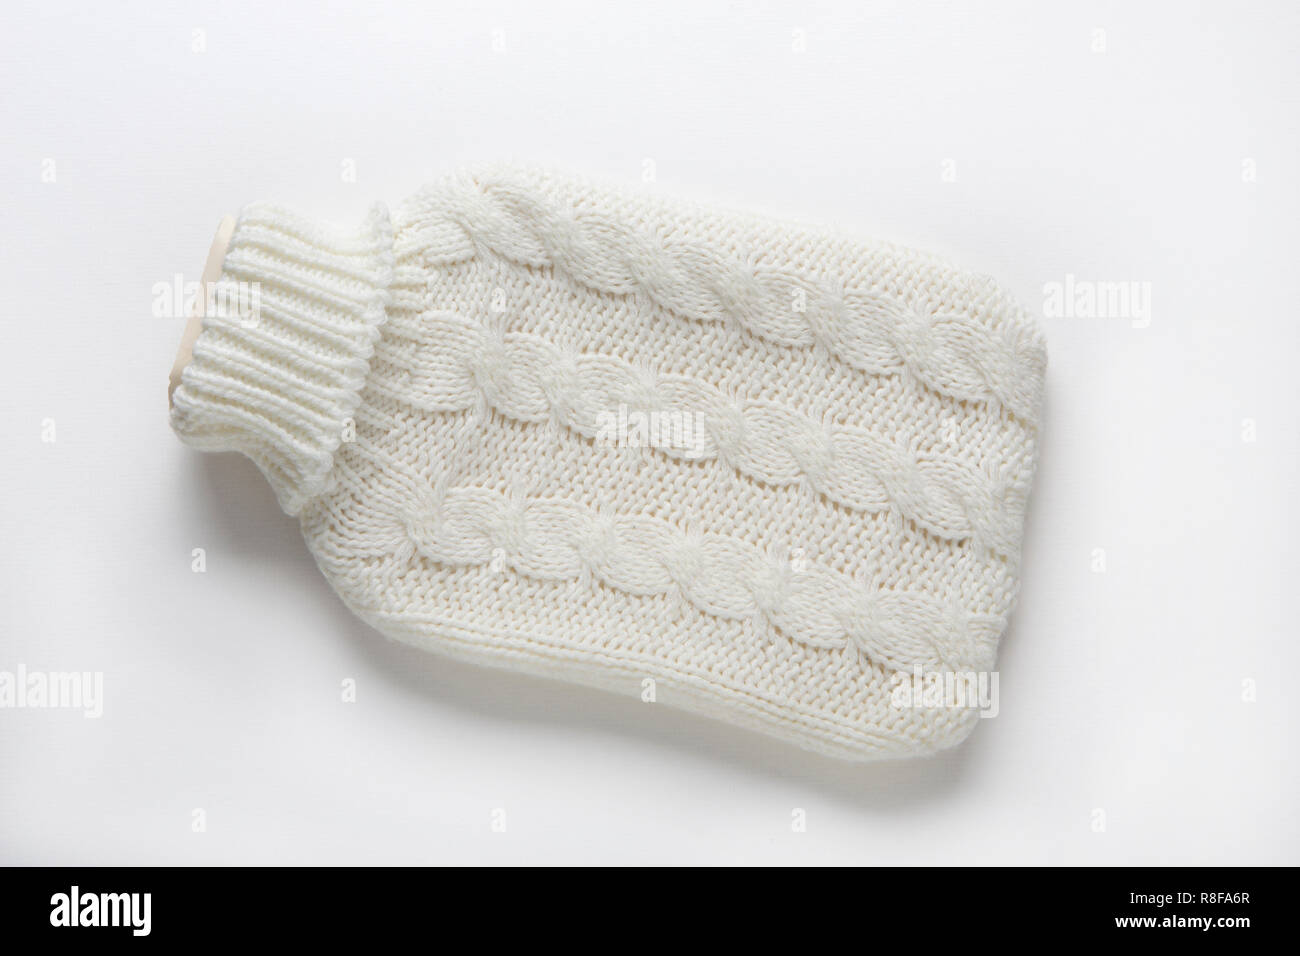 Hot water bottle in a knitted cover - Stock Image